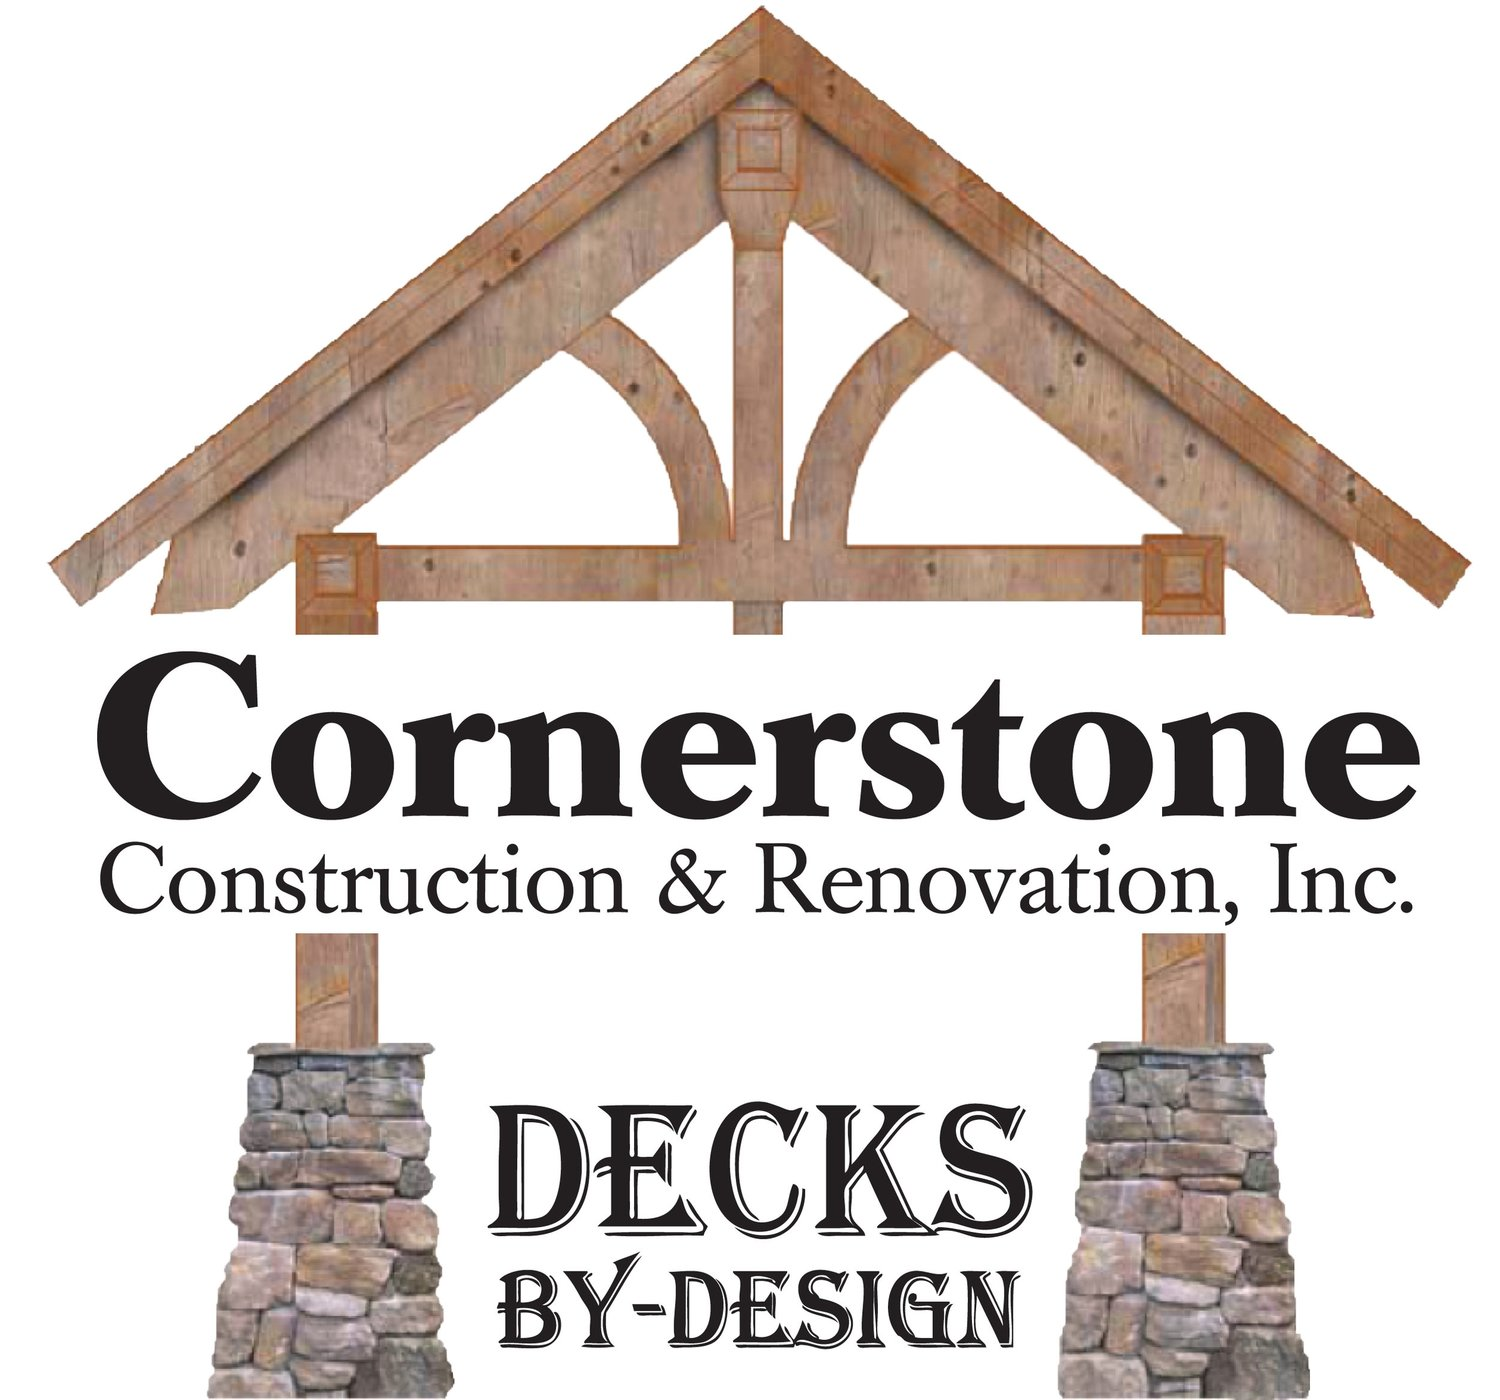 Cornerstone construction renovation inc decks by design for Cornerstone design